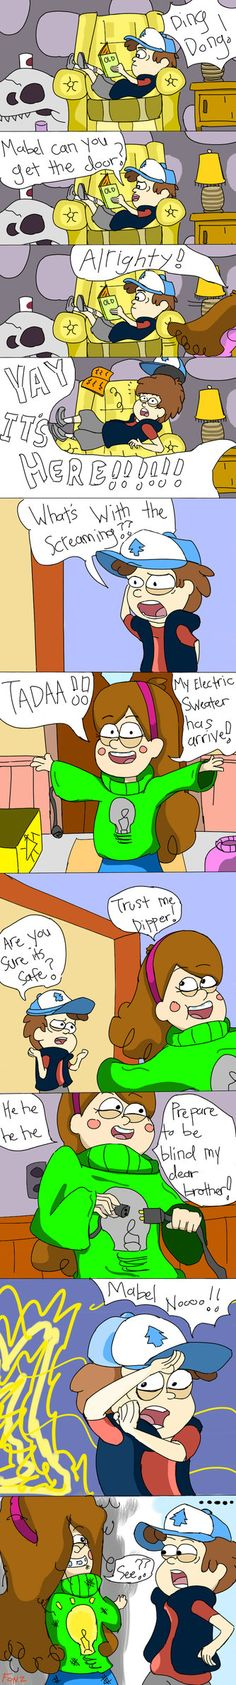 Gravity Falls - Mabel's Electric Sweater by Crescendolls187 on deviantART